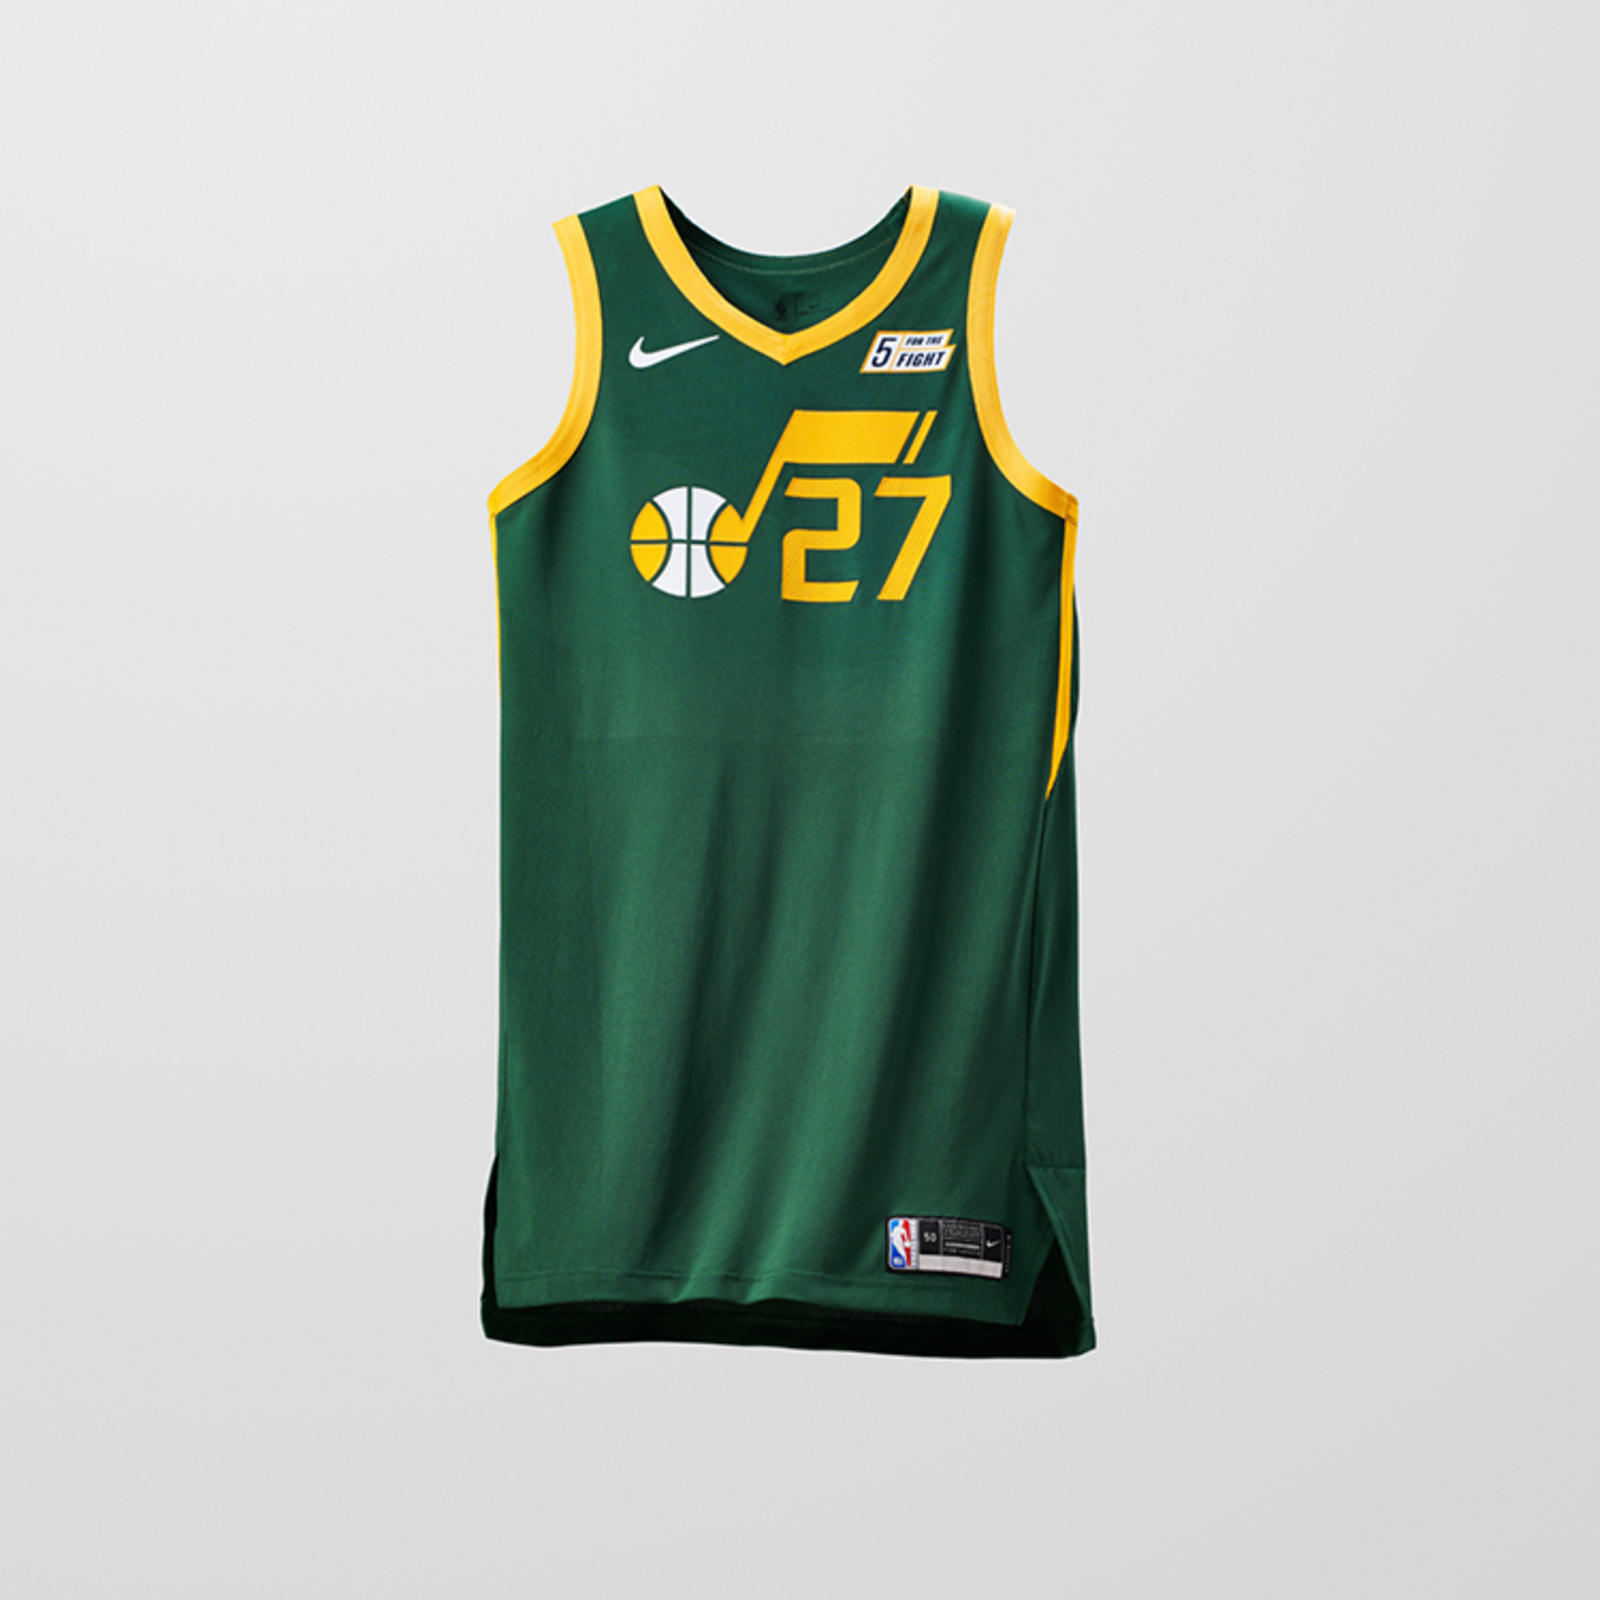 cc4d1ea15c18 Introducing the Nike x NBA EARNED Edition Uniforms 7. UTAH JAZZ